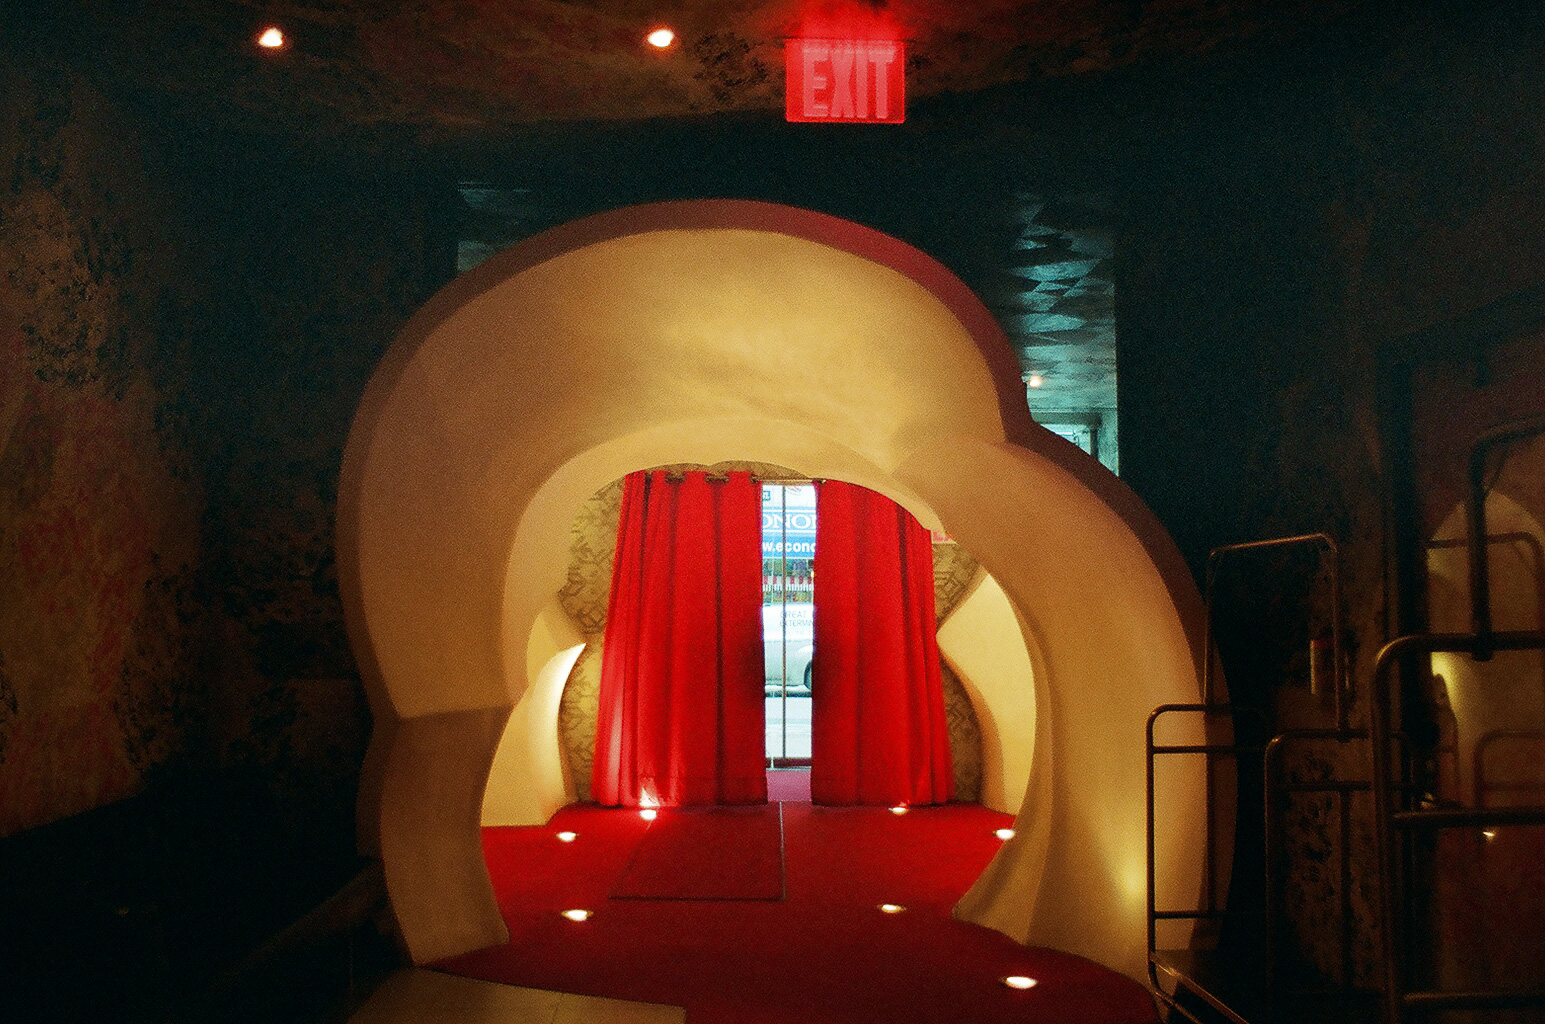 Lobby entrance at the Hotel on Rivington